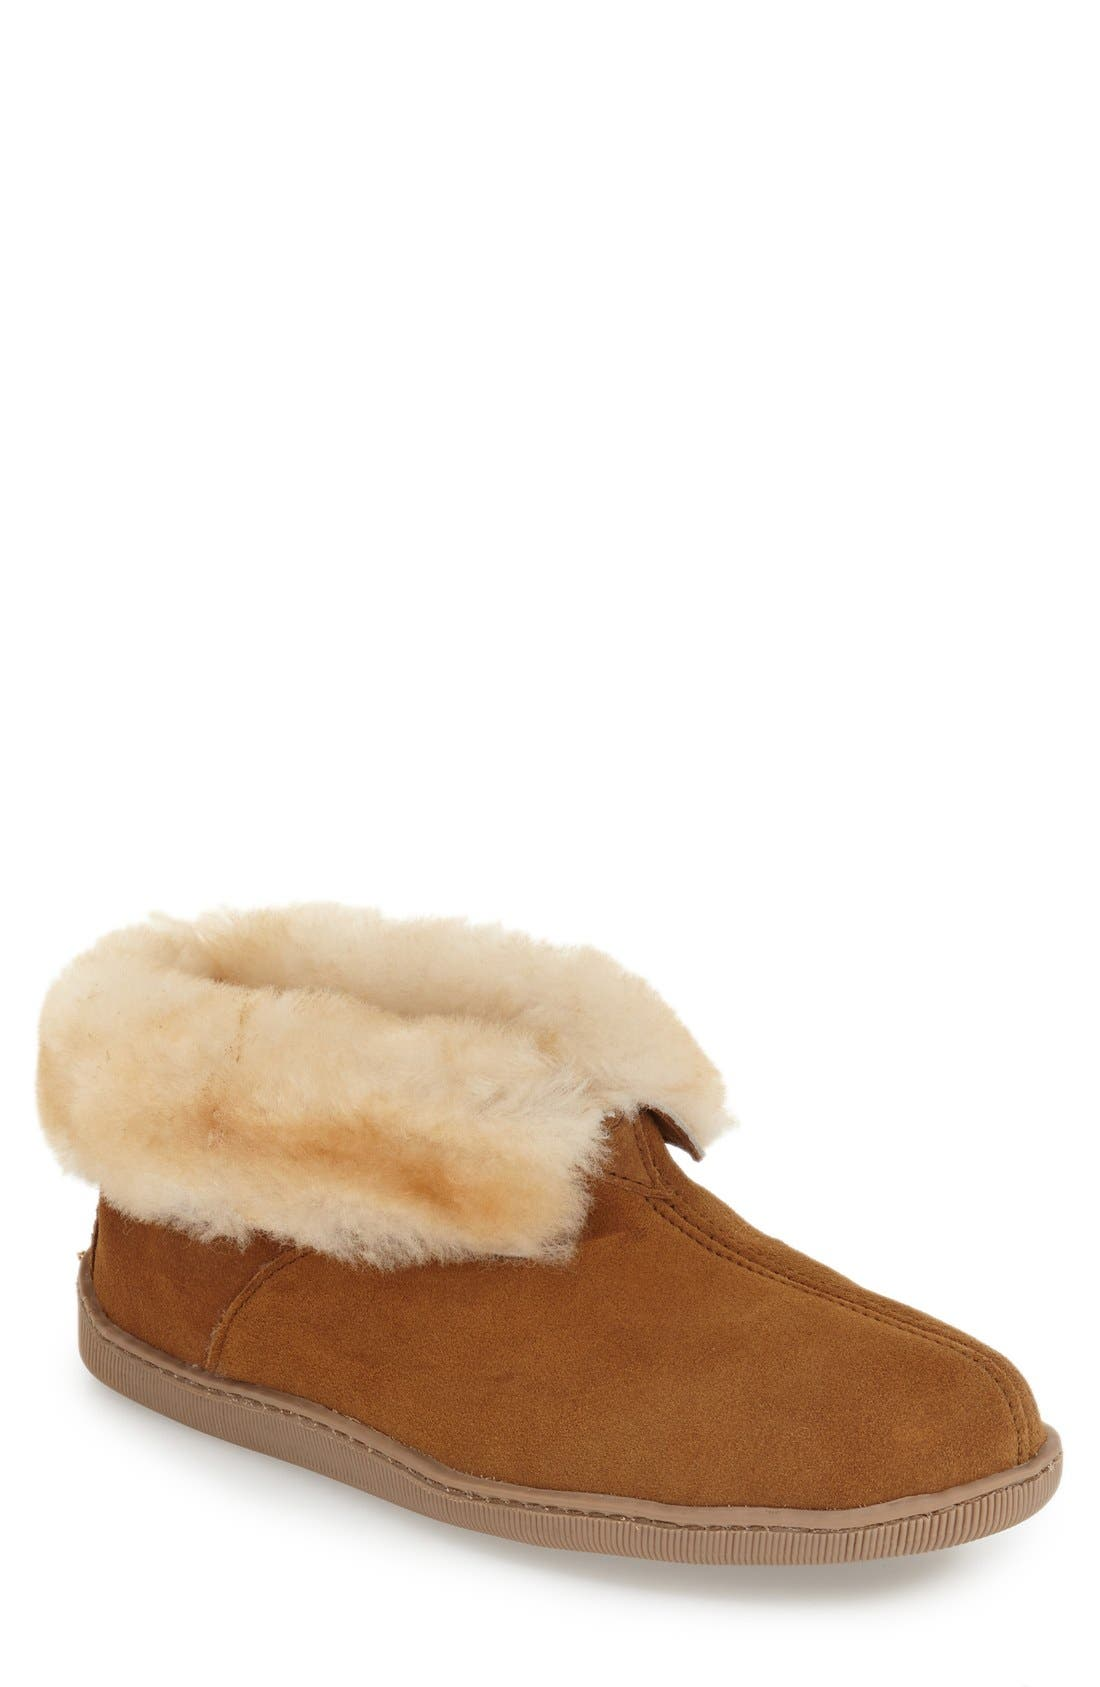 MINNETONKA Genuine Shearling Lined Ankle Boot, Main, color, GOLDEN TAN